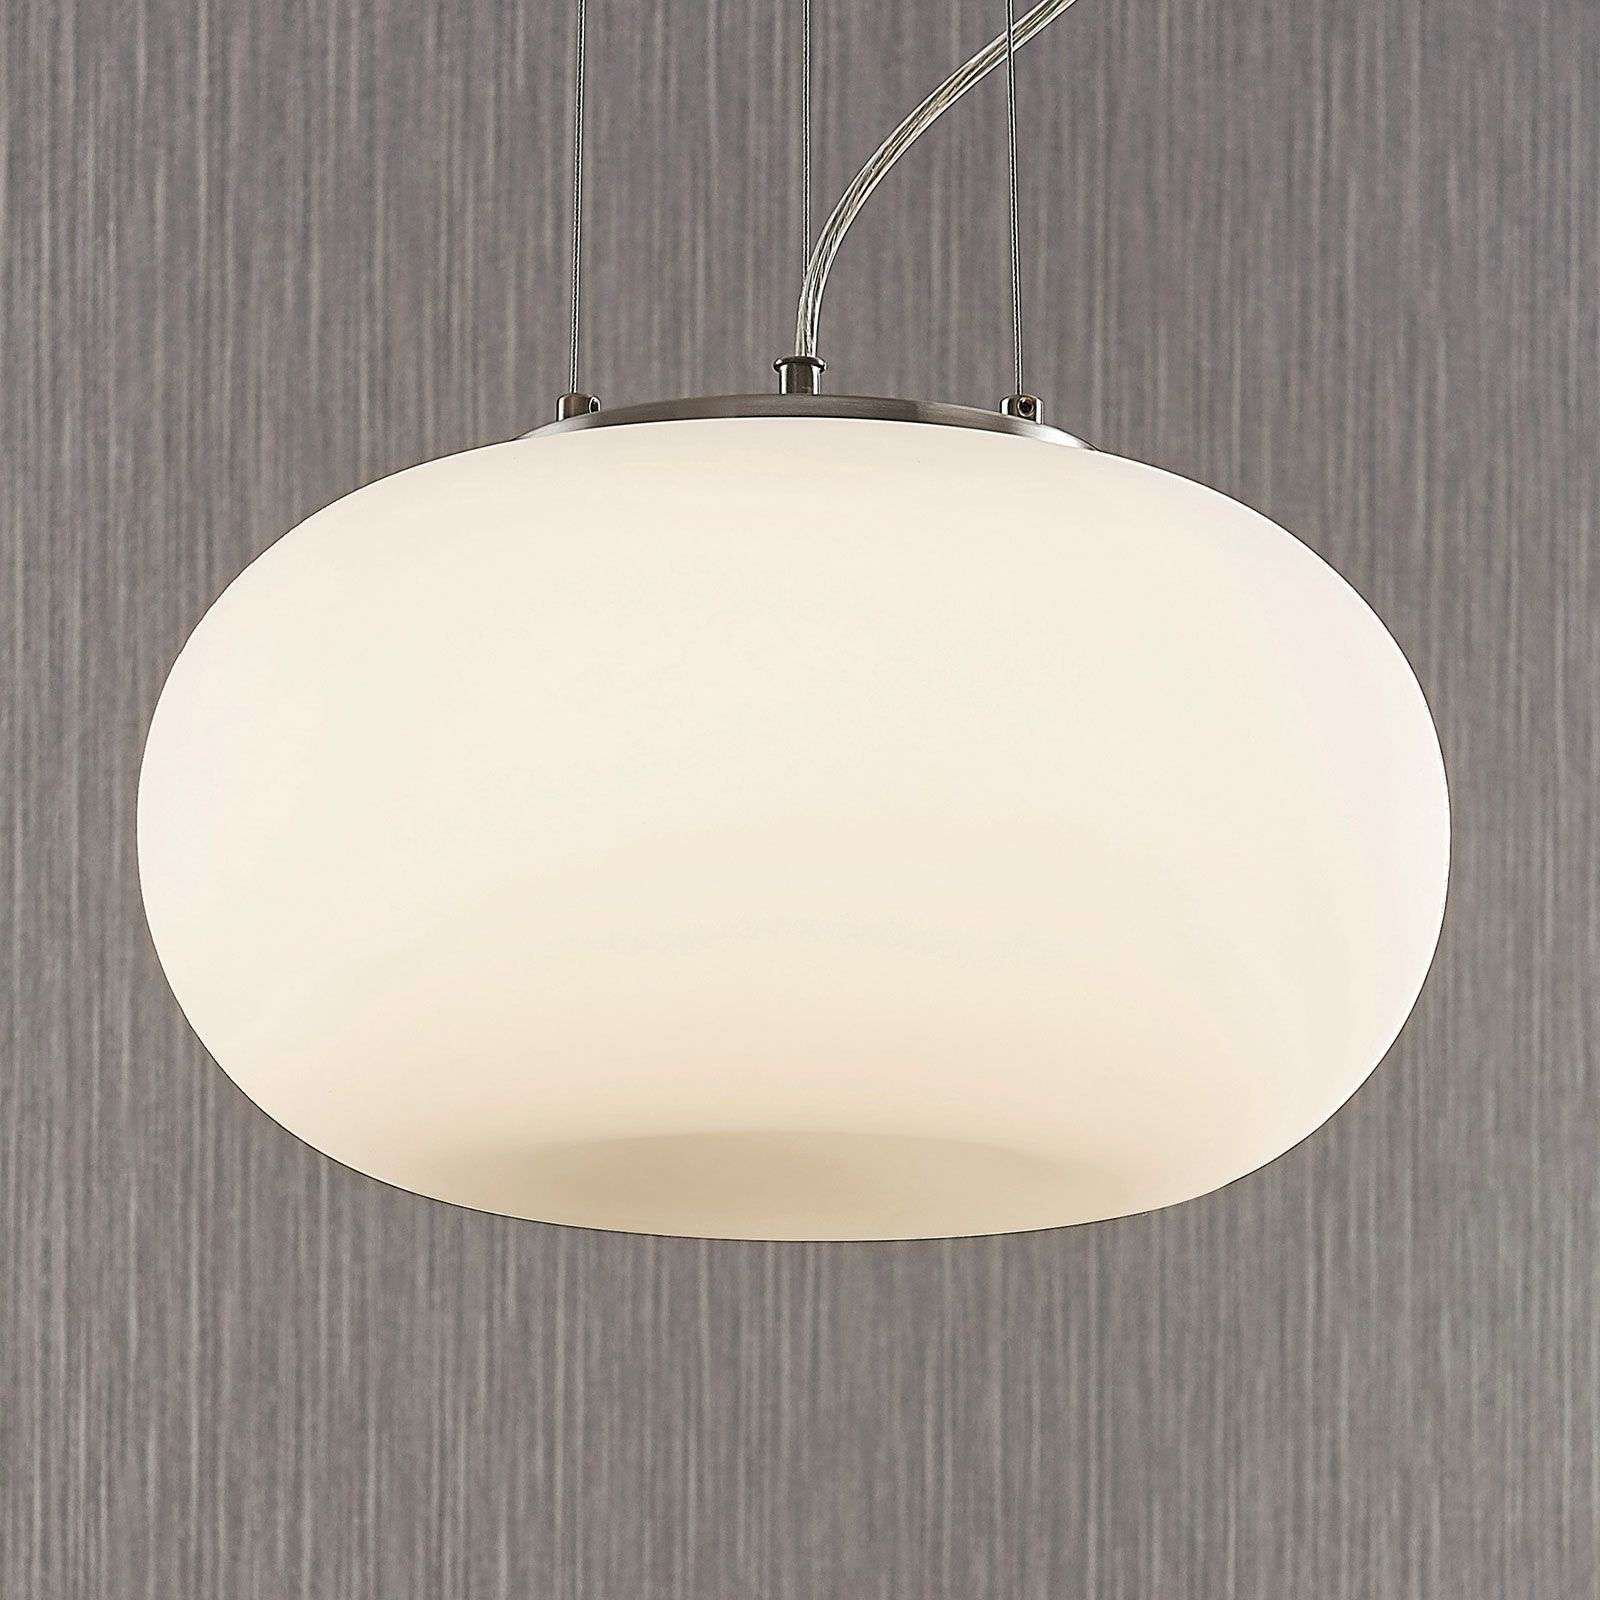 Suspension en verre opale LED Aglaja, blanc